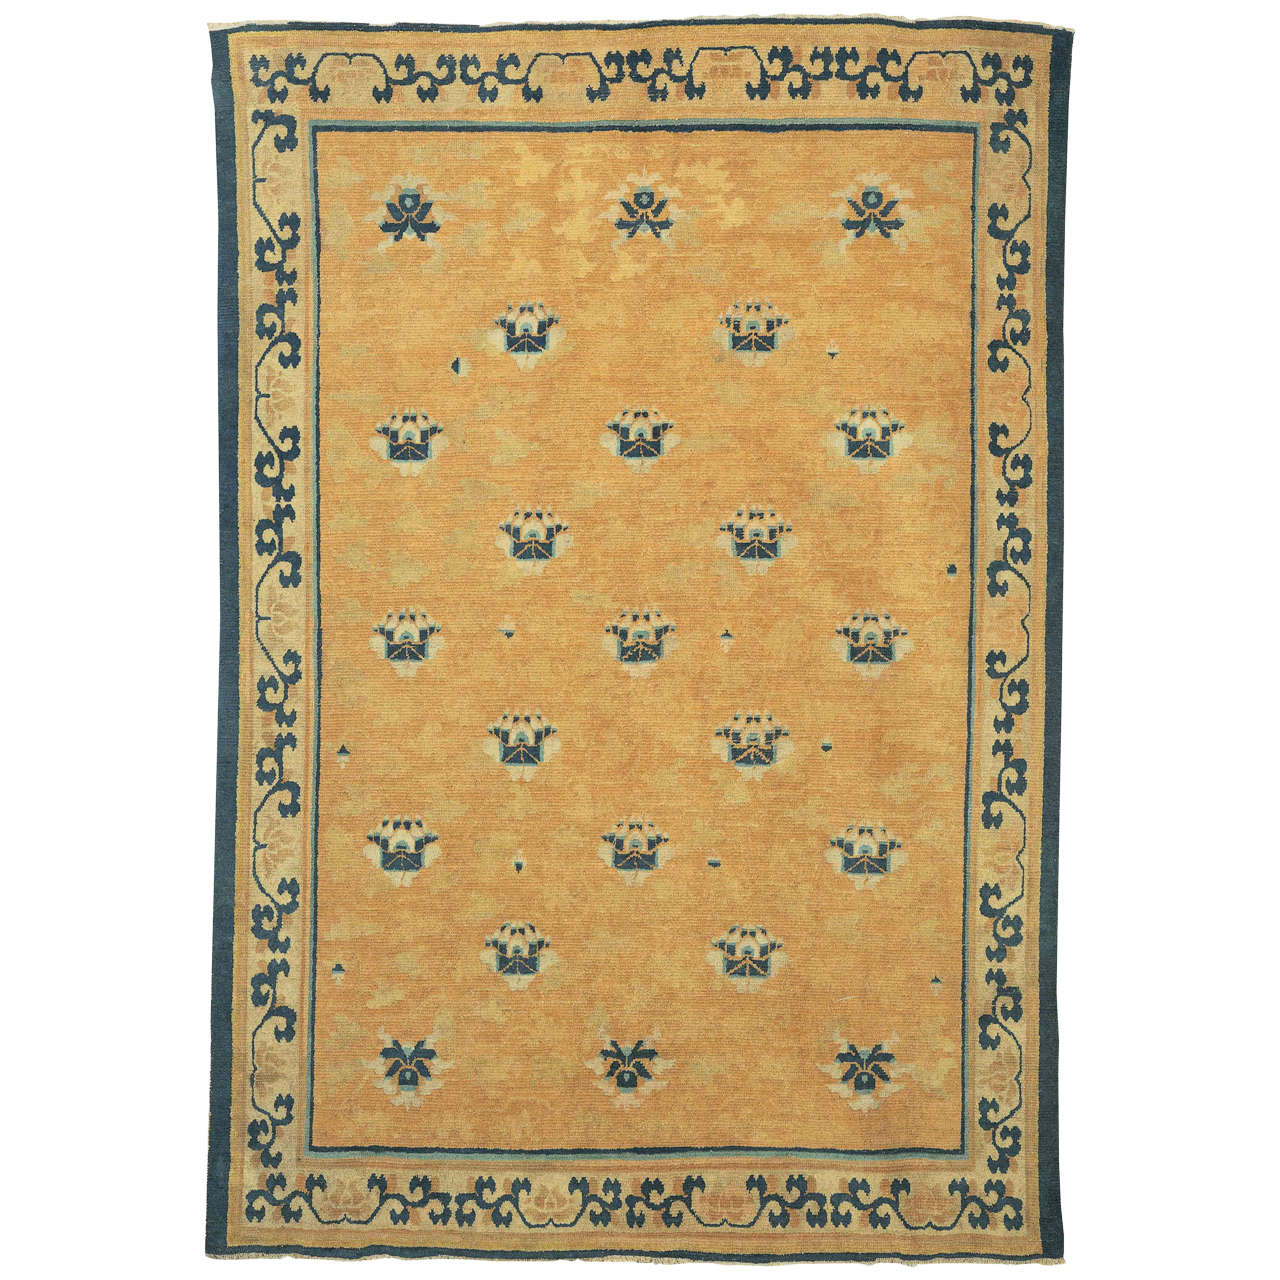 Early Chinese Ningxia Rug With Lotus Flowers For Sale At 1stdibs